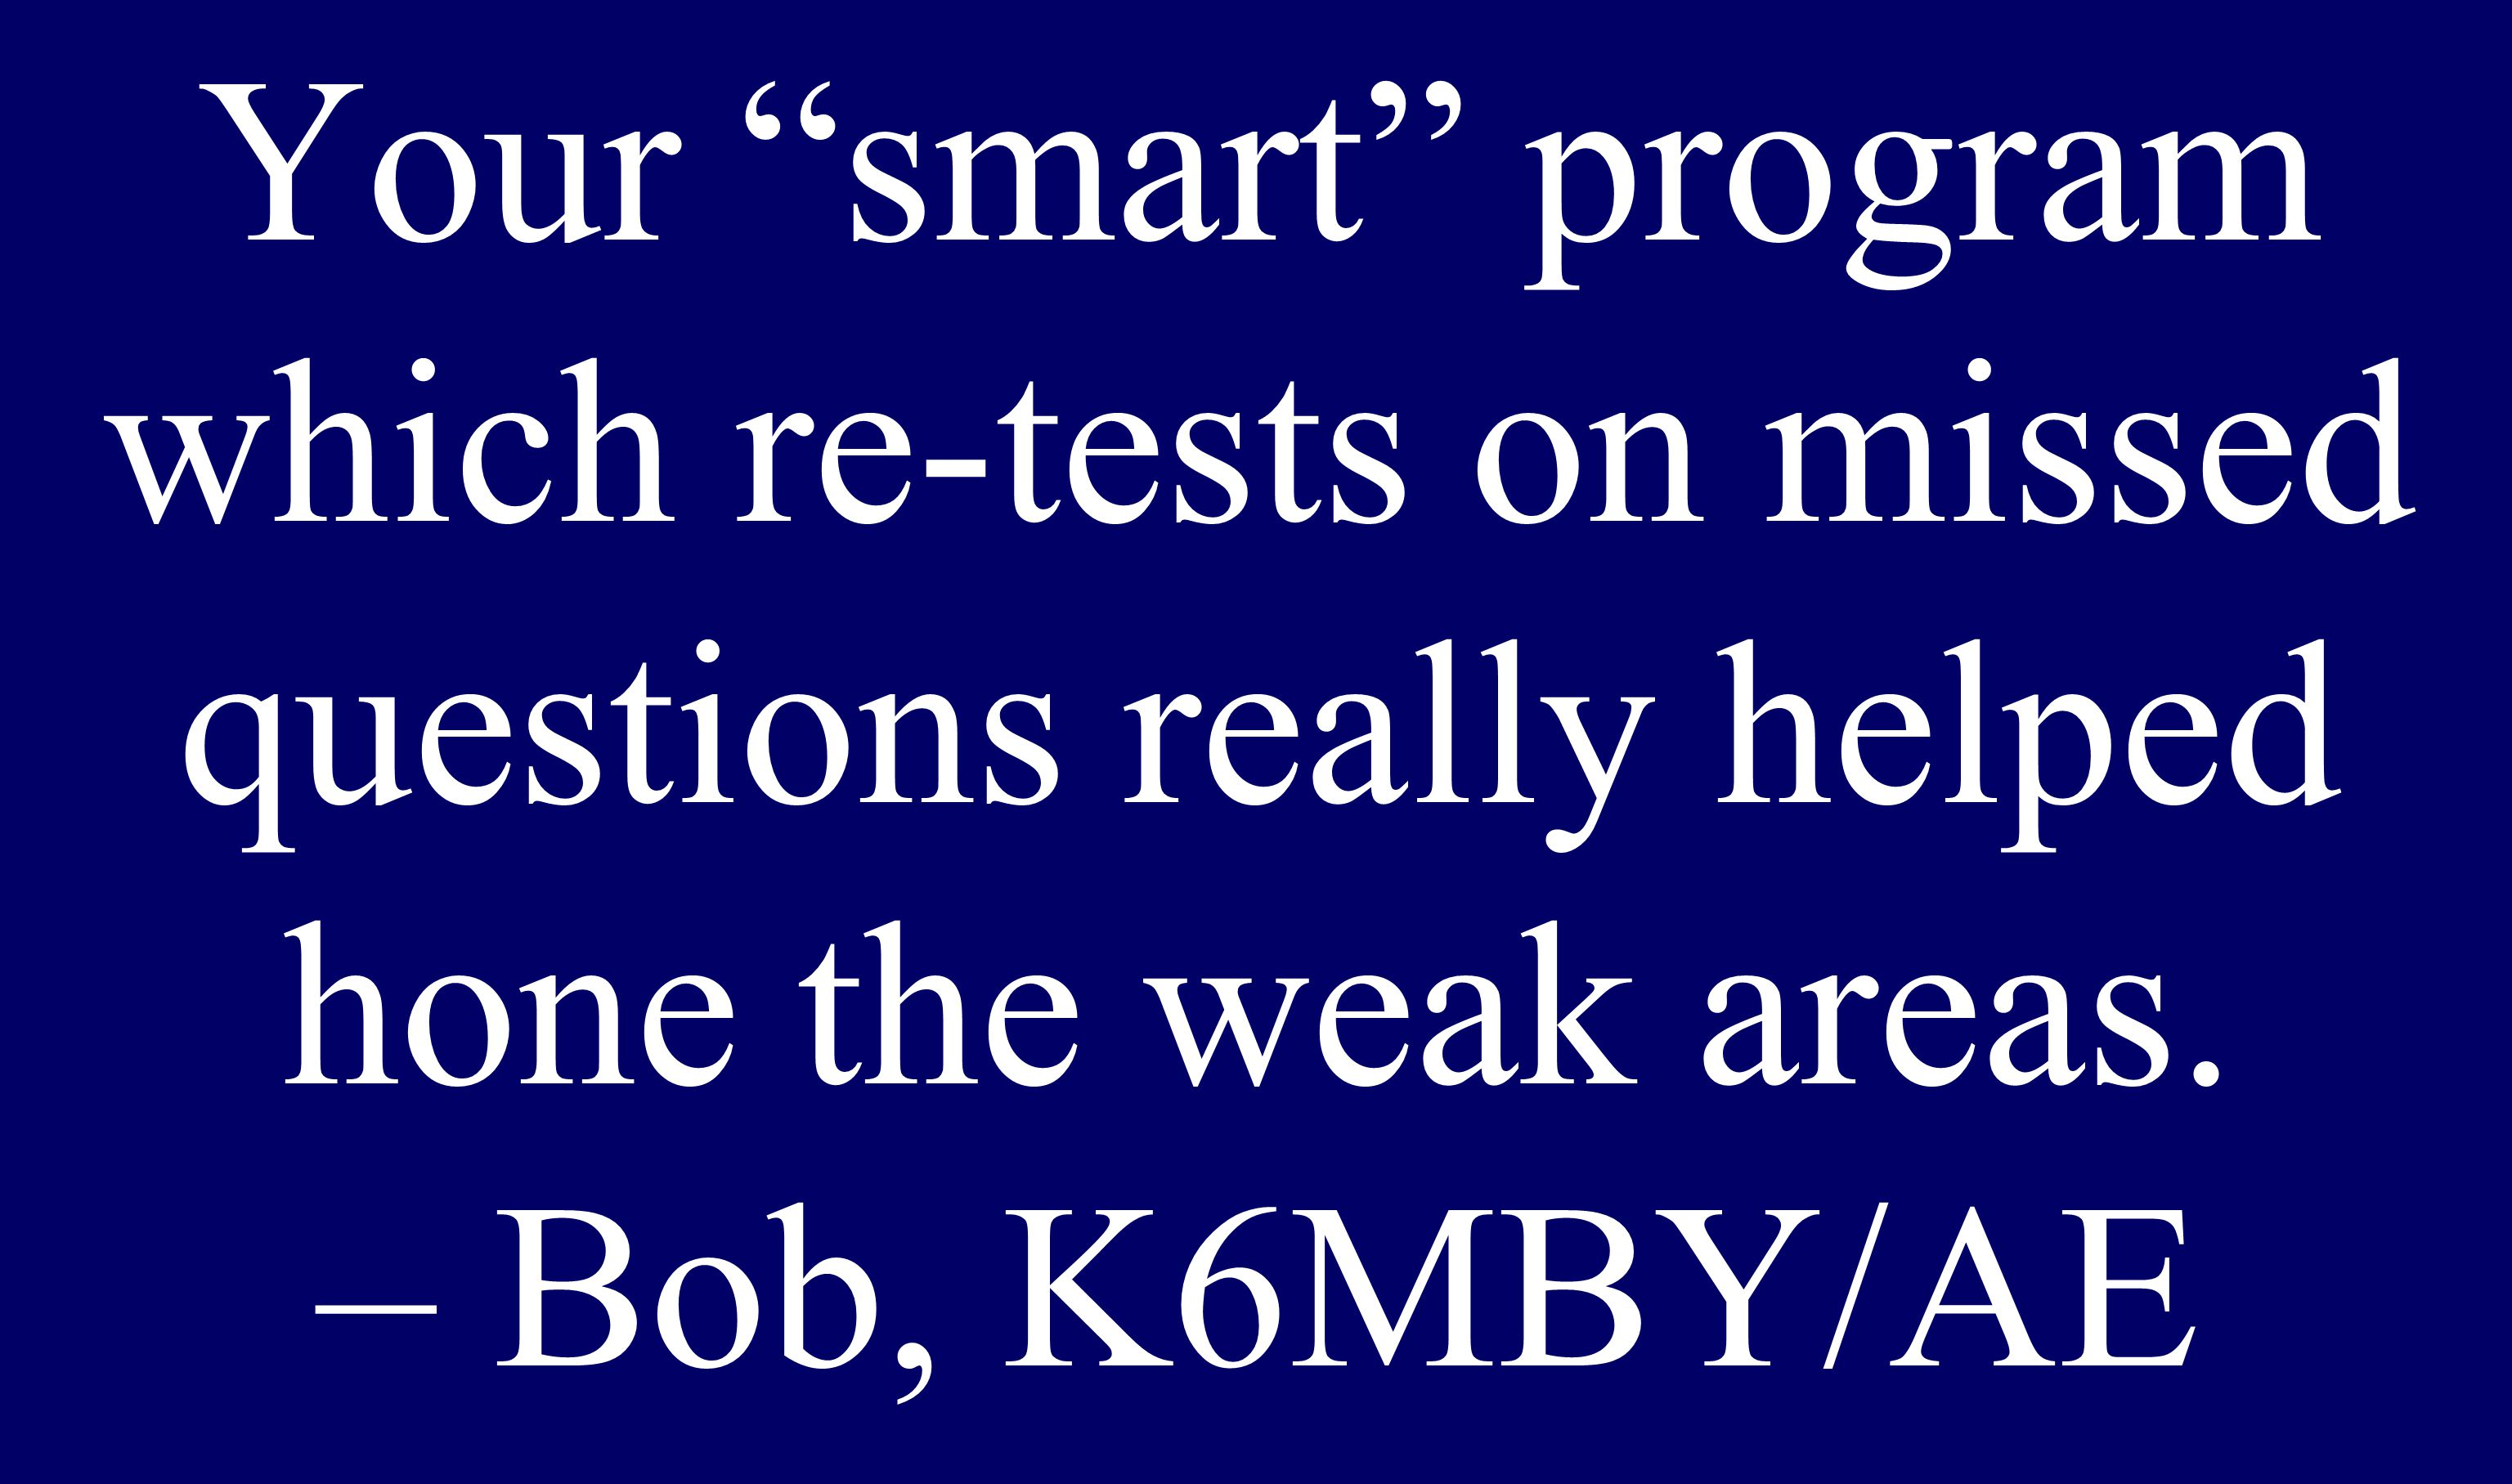 Your smart program which re-tests on missed questions really helped hone the weak areas.